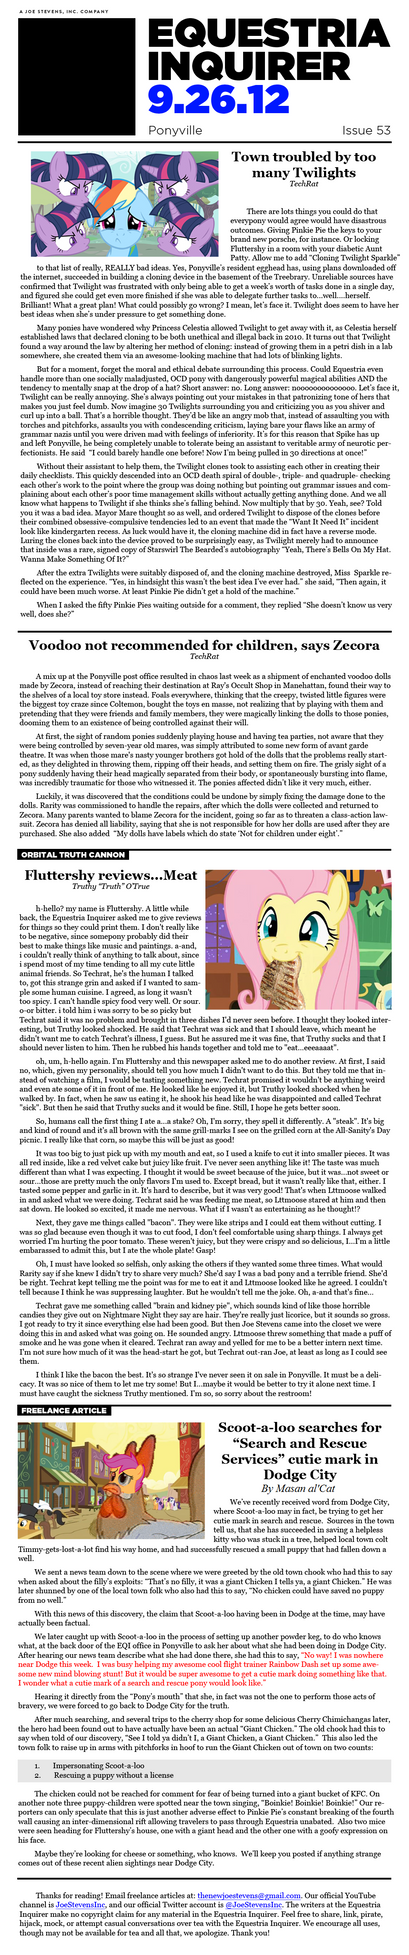 Equestria Inquirer 53 by JoeStevensInc